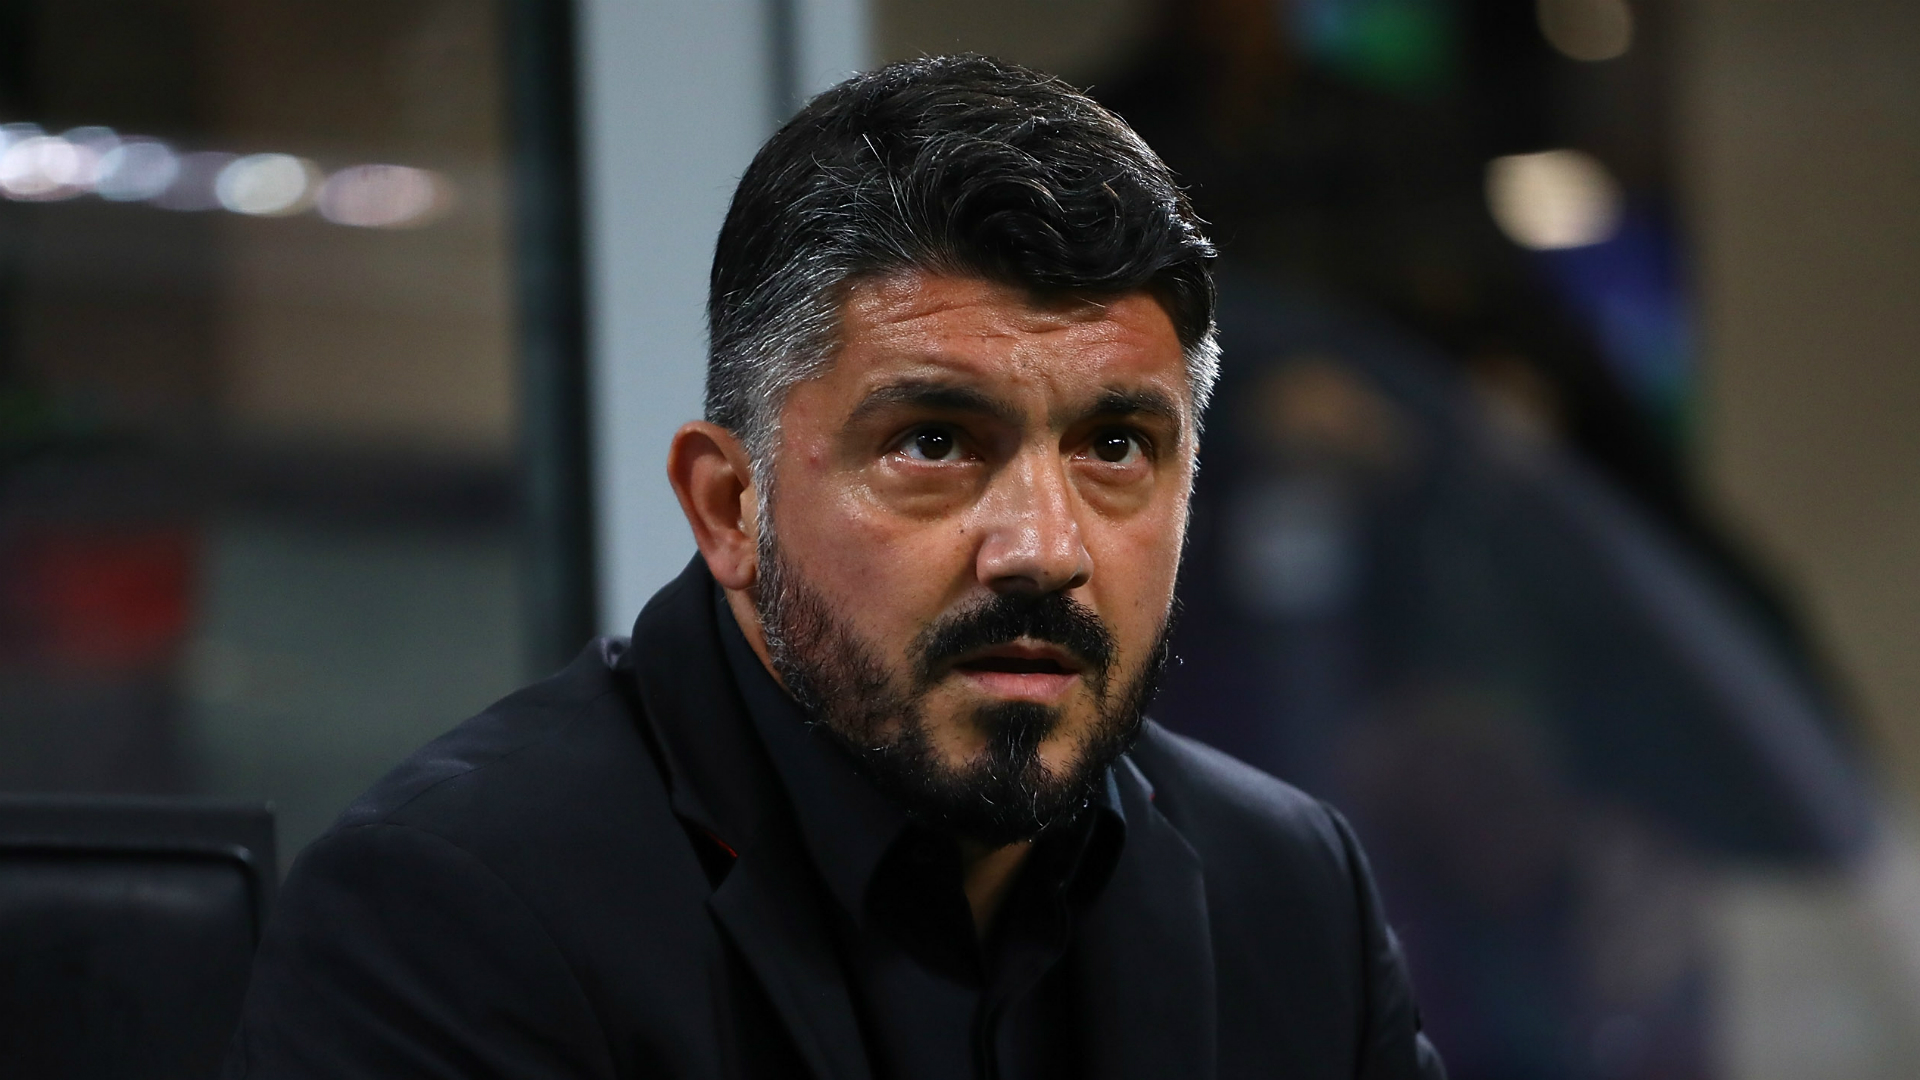 Gattuso has given Milan their soul back, says Sacchi